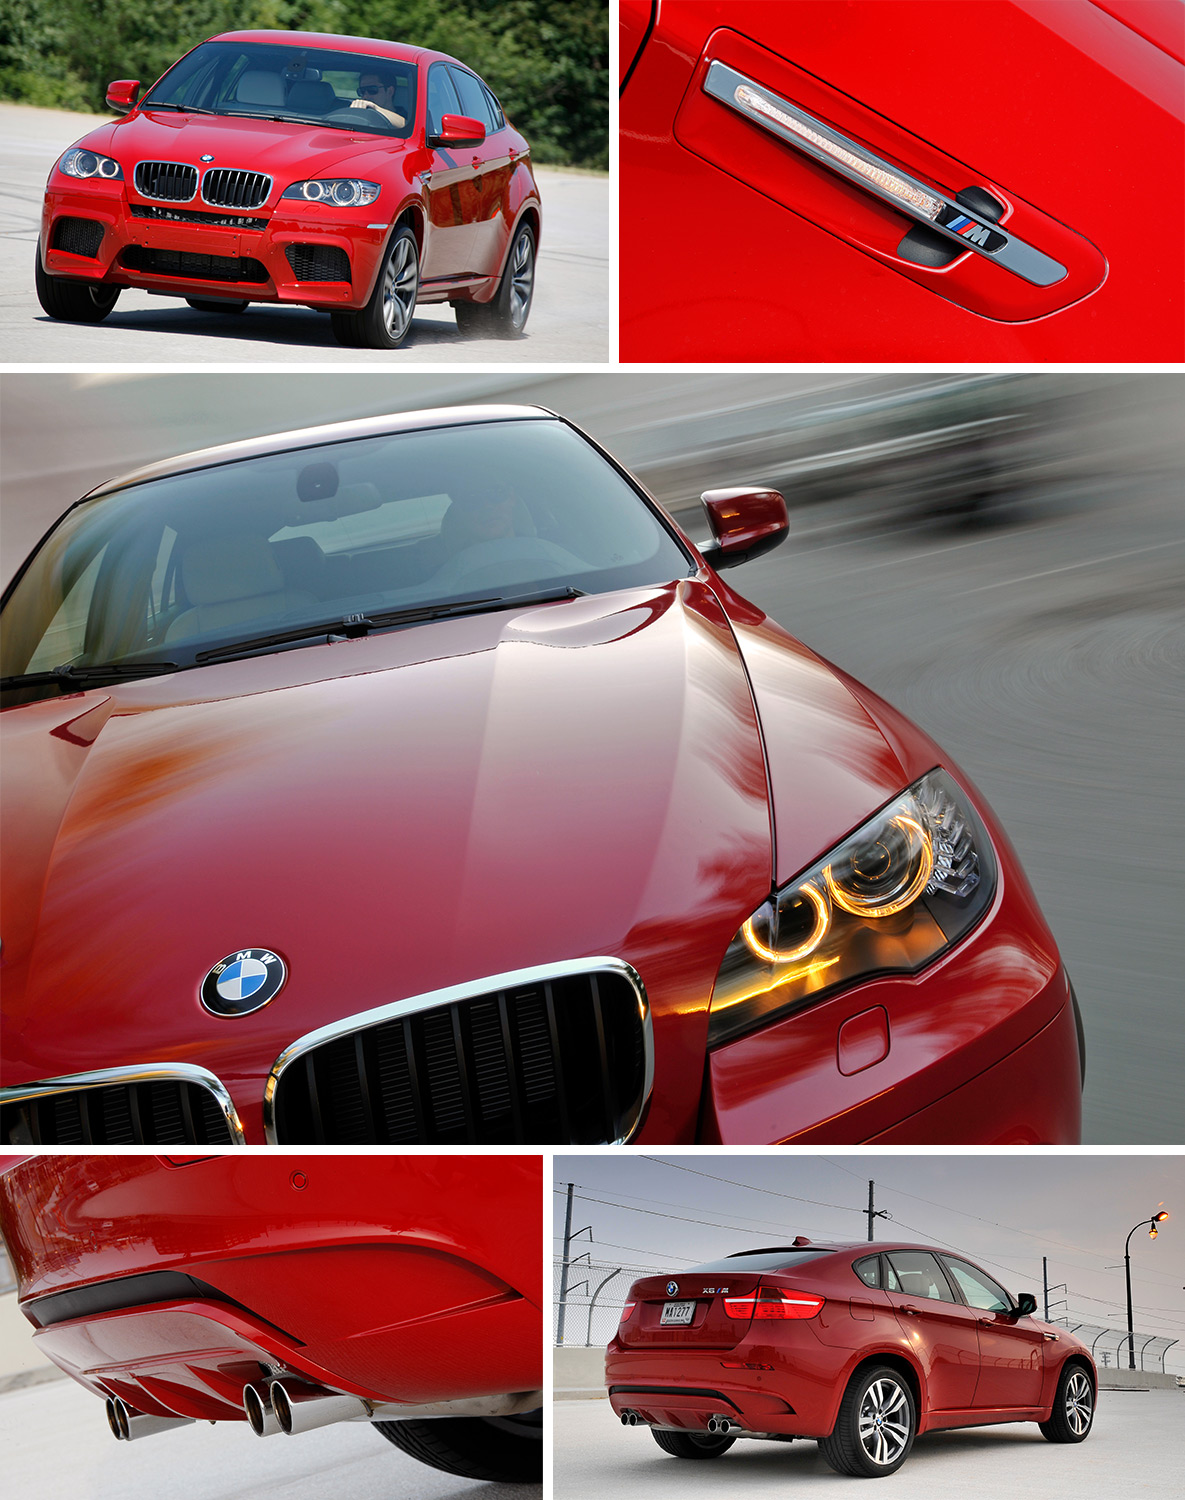 Red BMW X6 M of the first generation (E71)